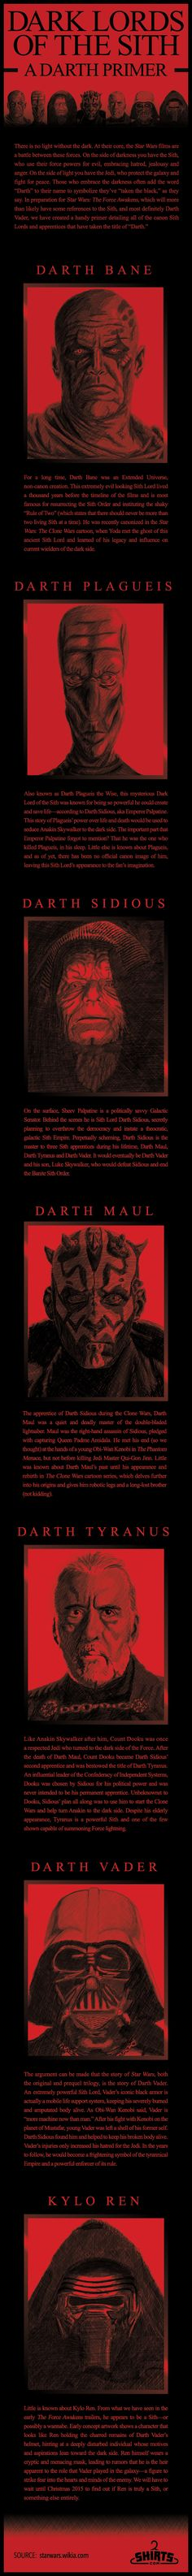 Dark Lords Of The Sith: A Darth Primer [INFOGRAPHIC] |